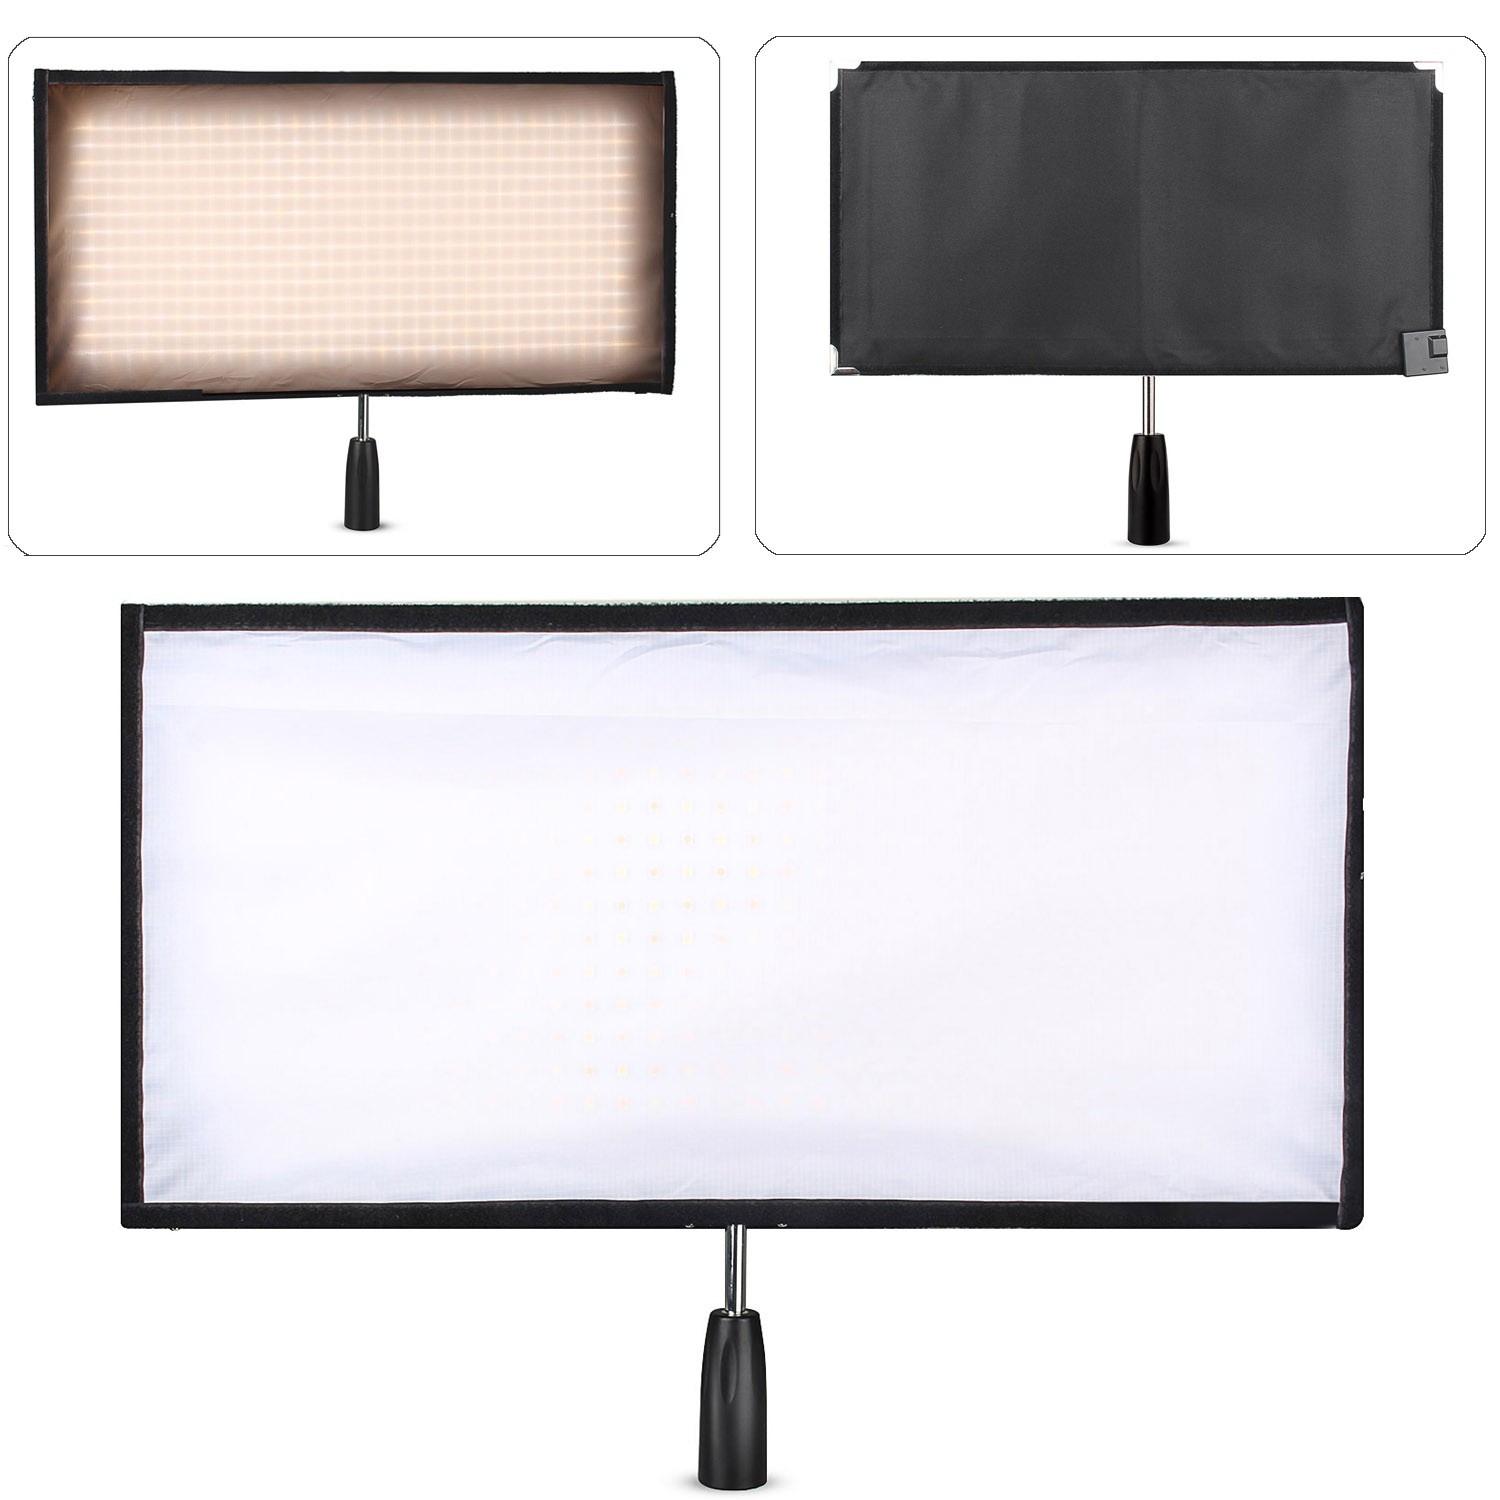 Travor Flexible LED Light Bi-Color Size 30*60CM Video Studio Photography Light With 2.4G Remote Control For Video Shooting travor flexible led video light fl 3060 size 30 60cm cri95 5500k with 2 4g remote control for video shooting